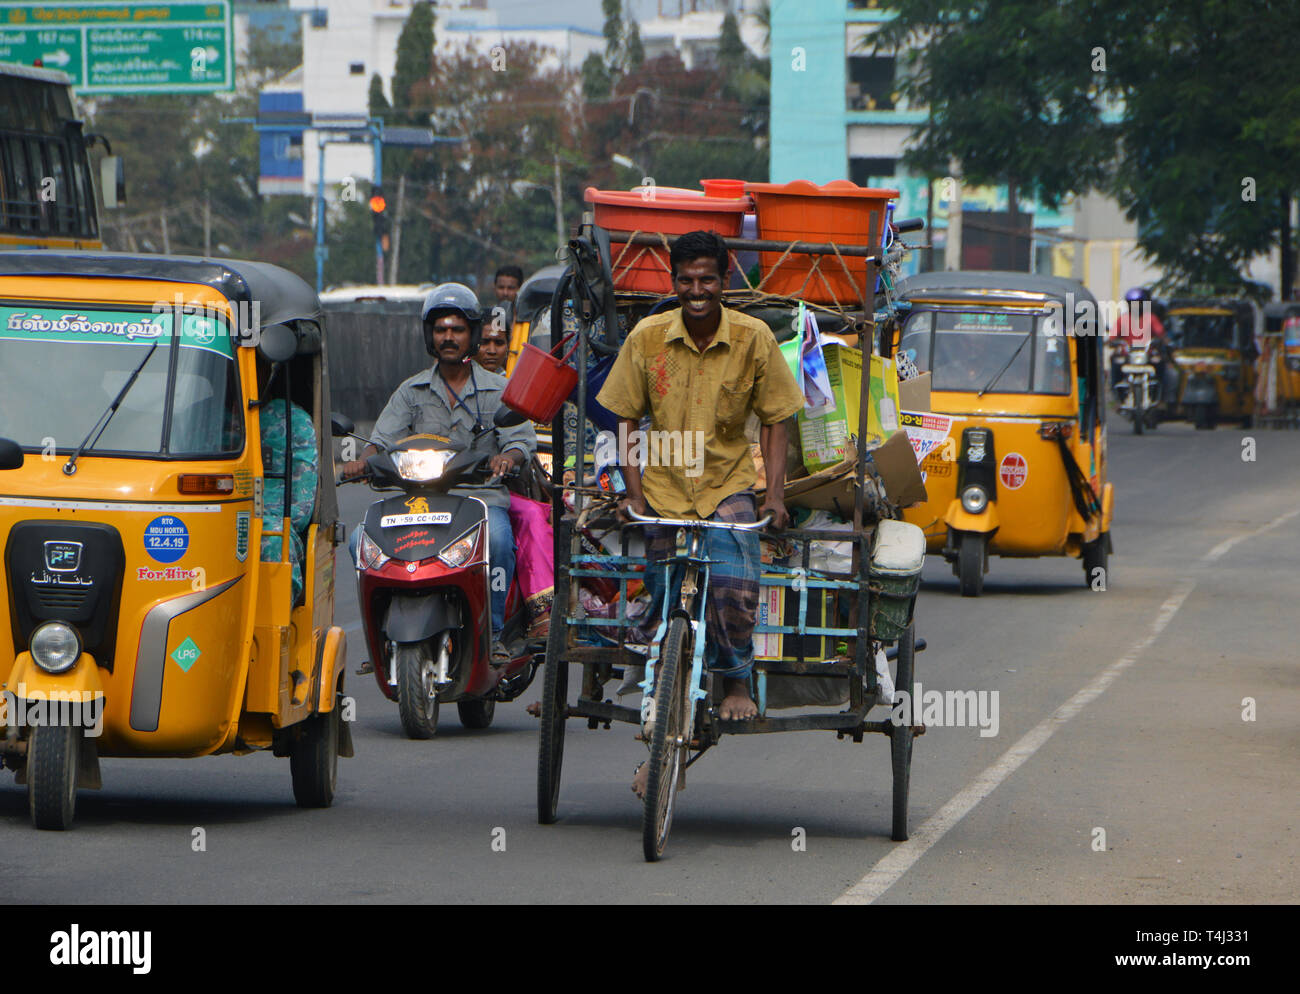 Street Scene in Madurai in the South of India - Tuk Tuk riding alongside cycle rickshaws and mopeds, recorded on 10.02.2019 | usage worldwide Stock Photo